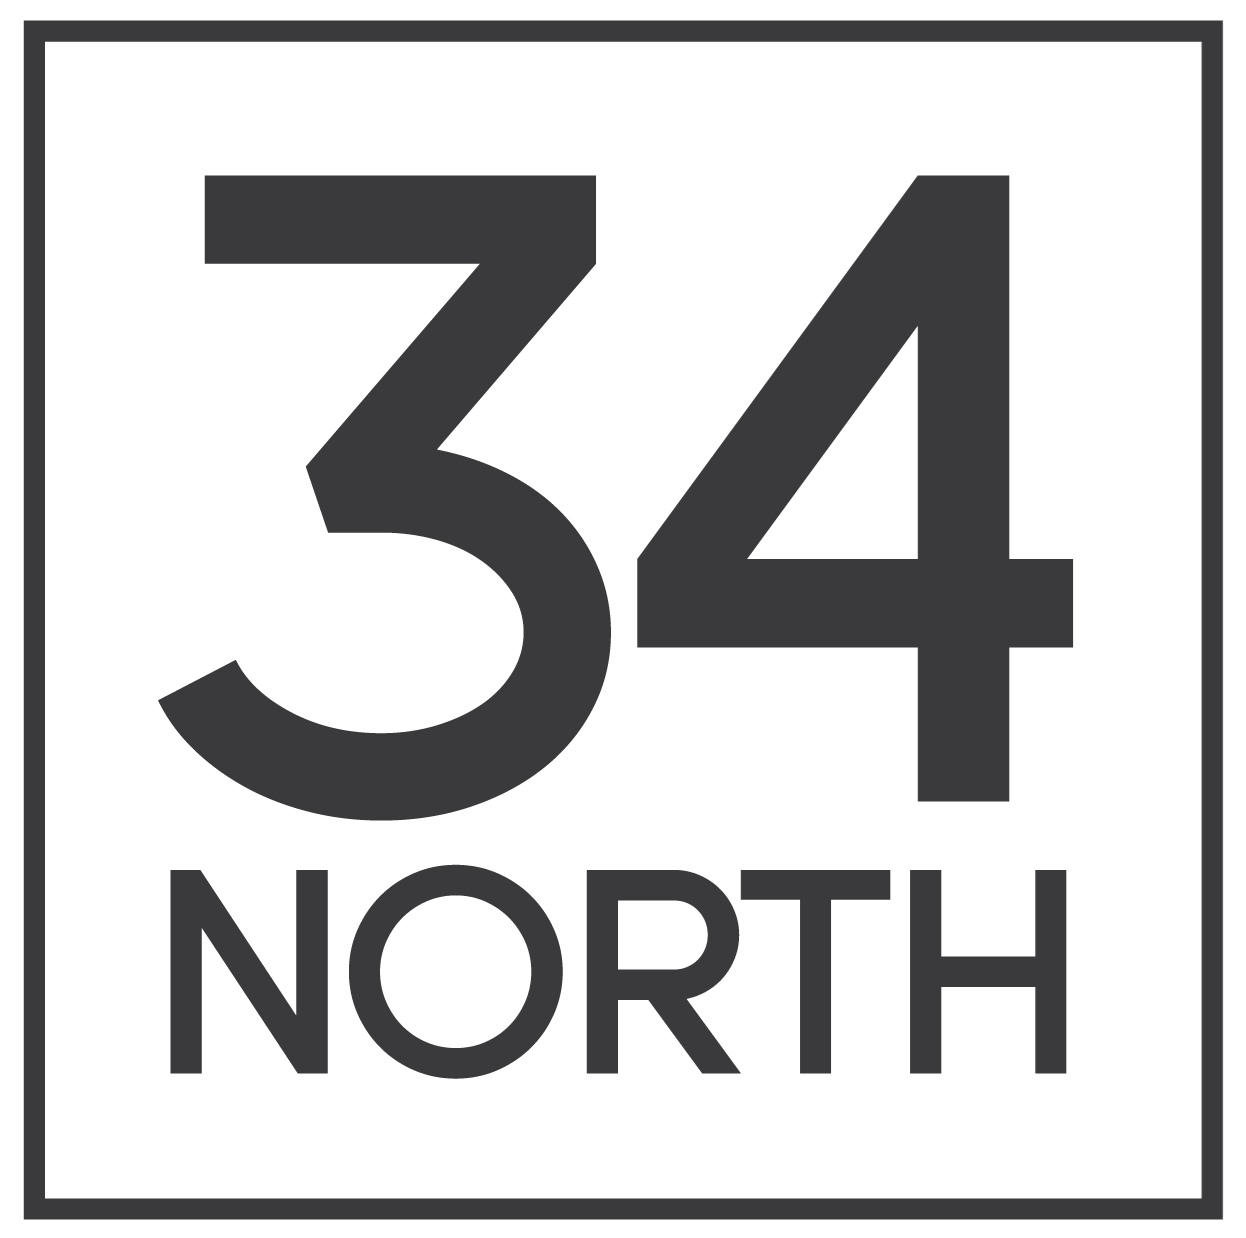 34 North Logo